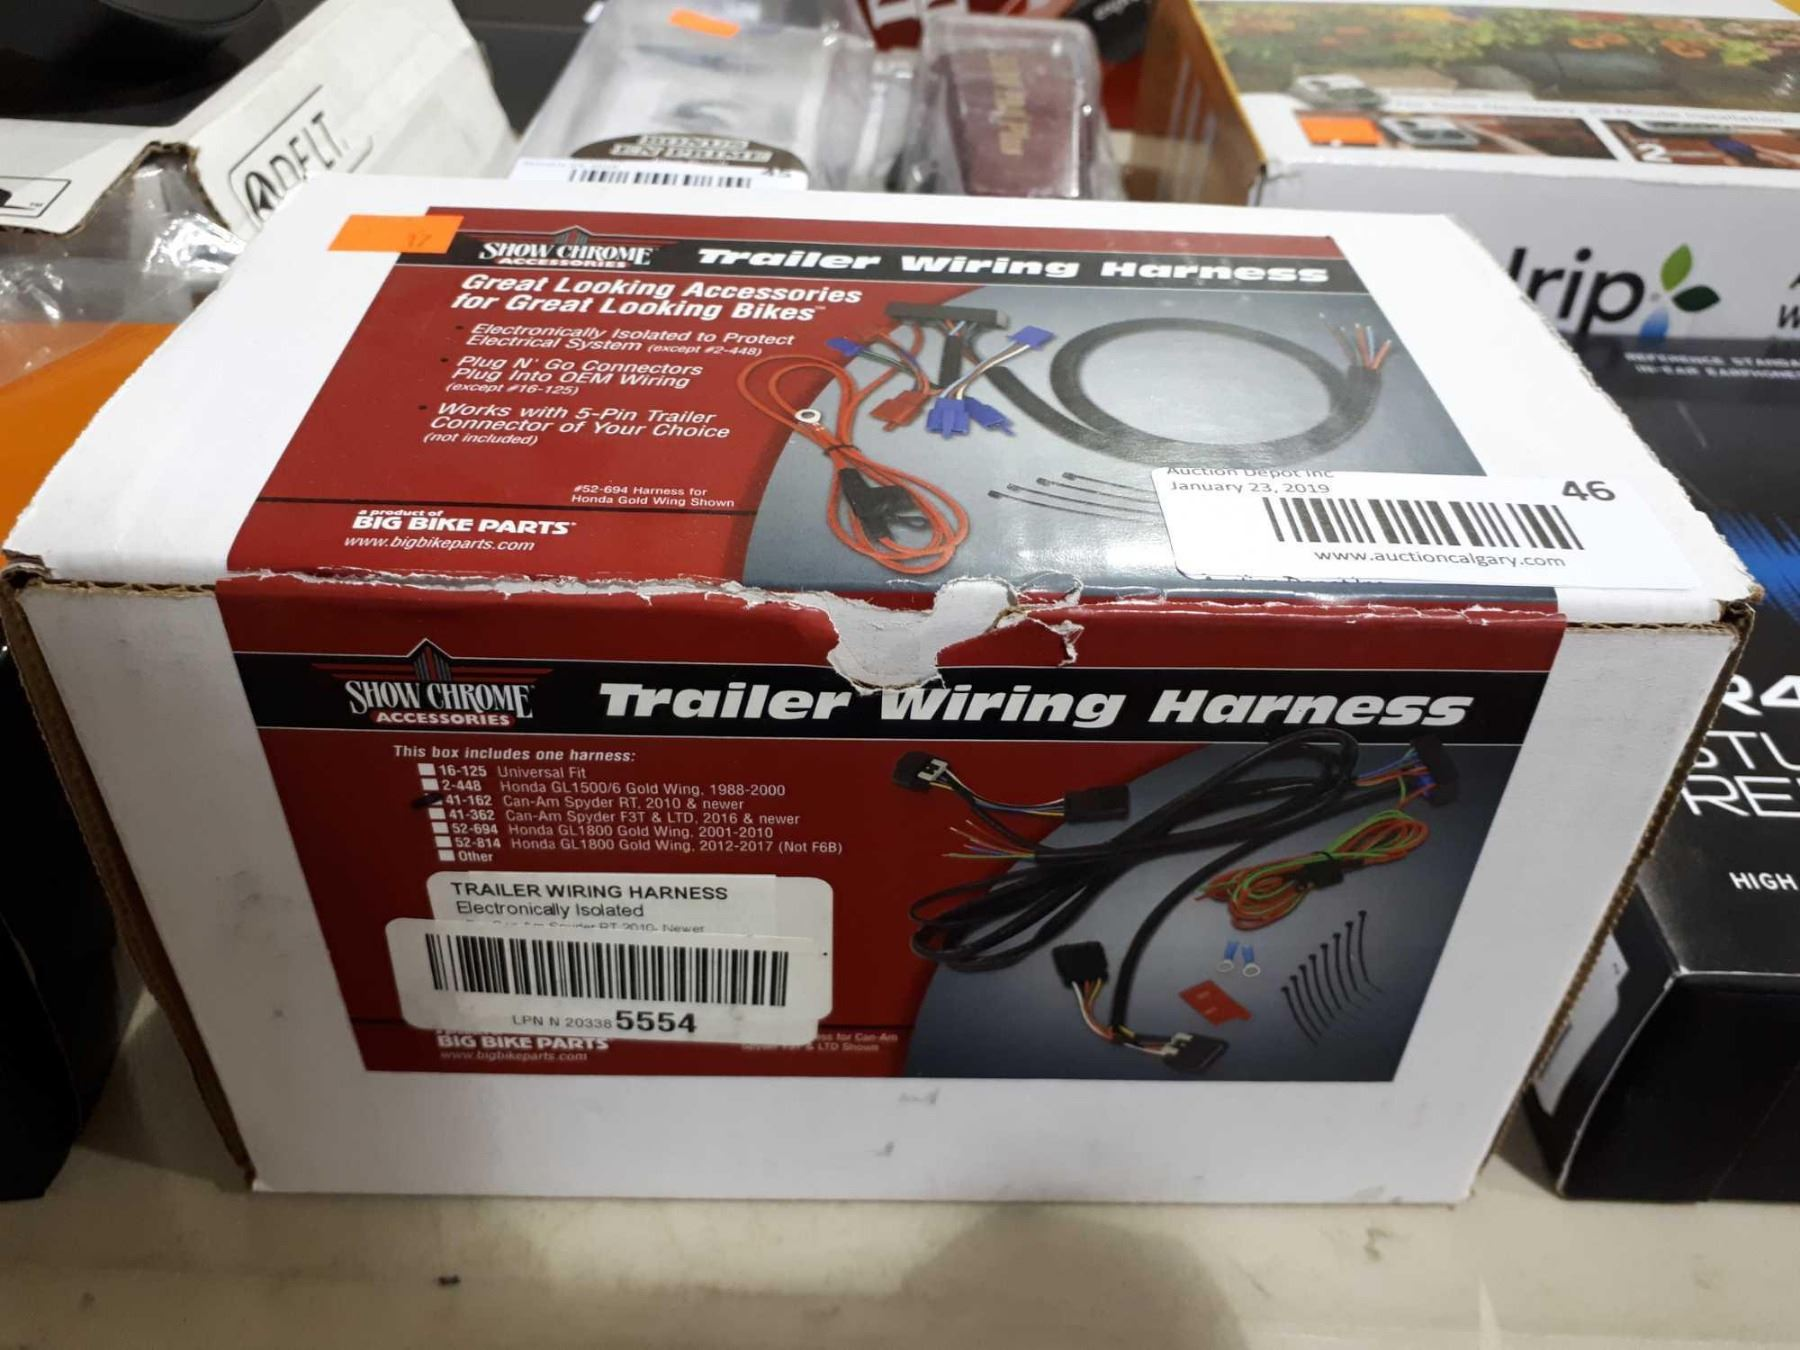 small resolution of image 1 show chrome trailer wiring harness